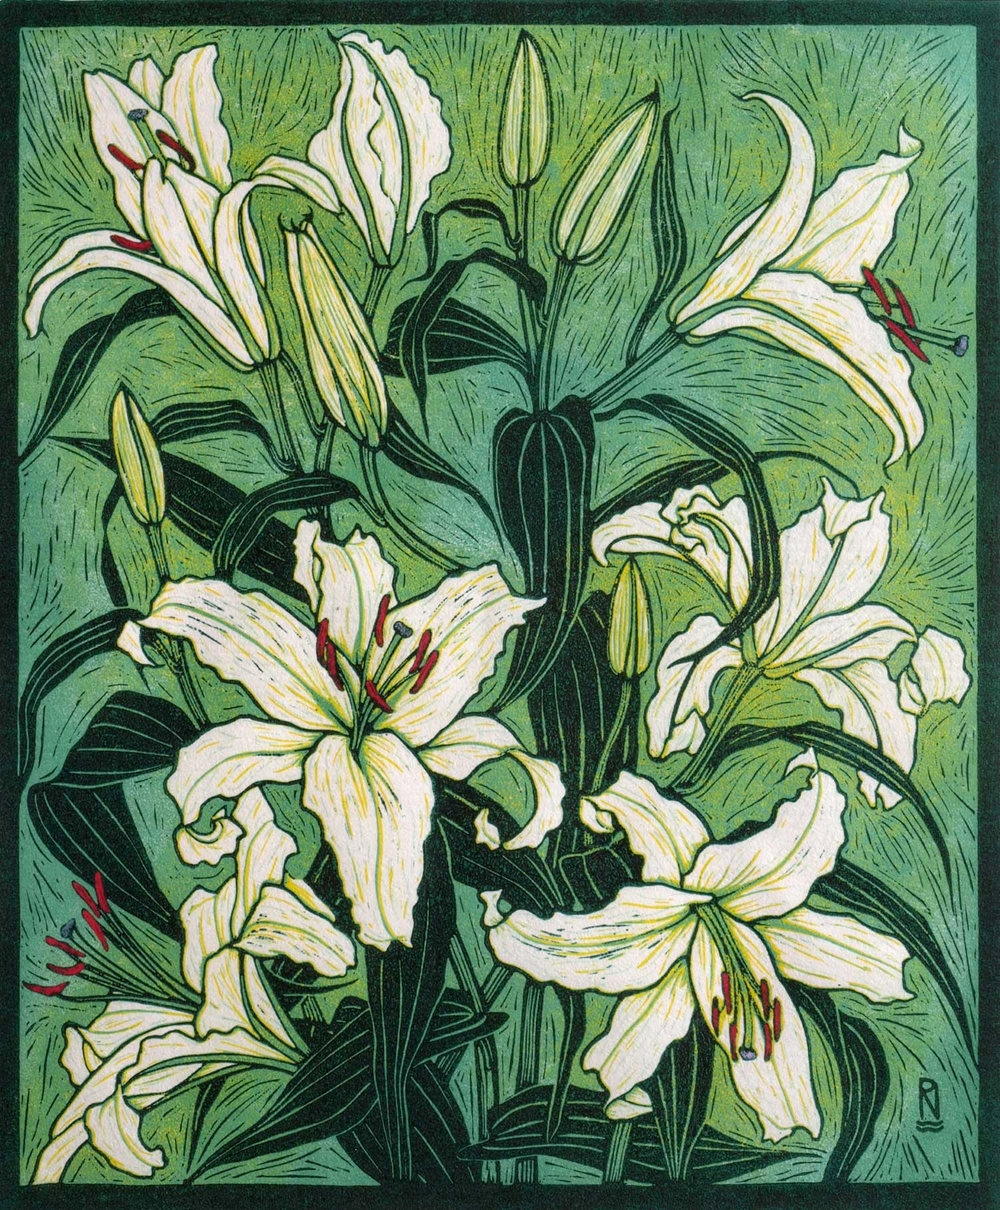 ORIENTAL LILY  53.5 x 44.5 CM    EDITION OF 50  REDUCTION LINOCUT on Japanese paper  $1,250